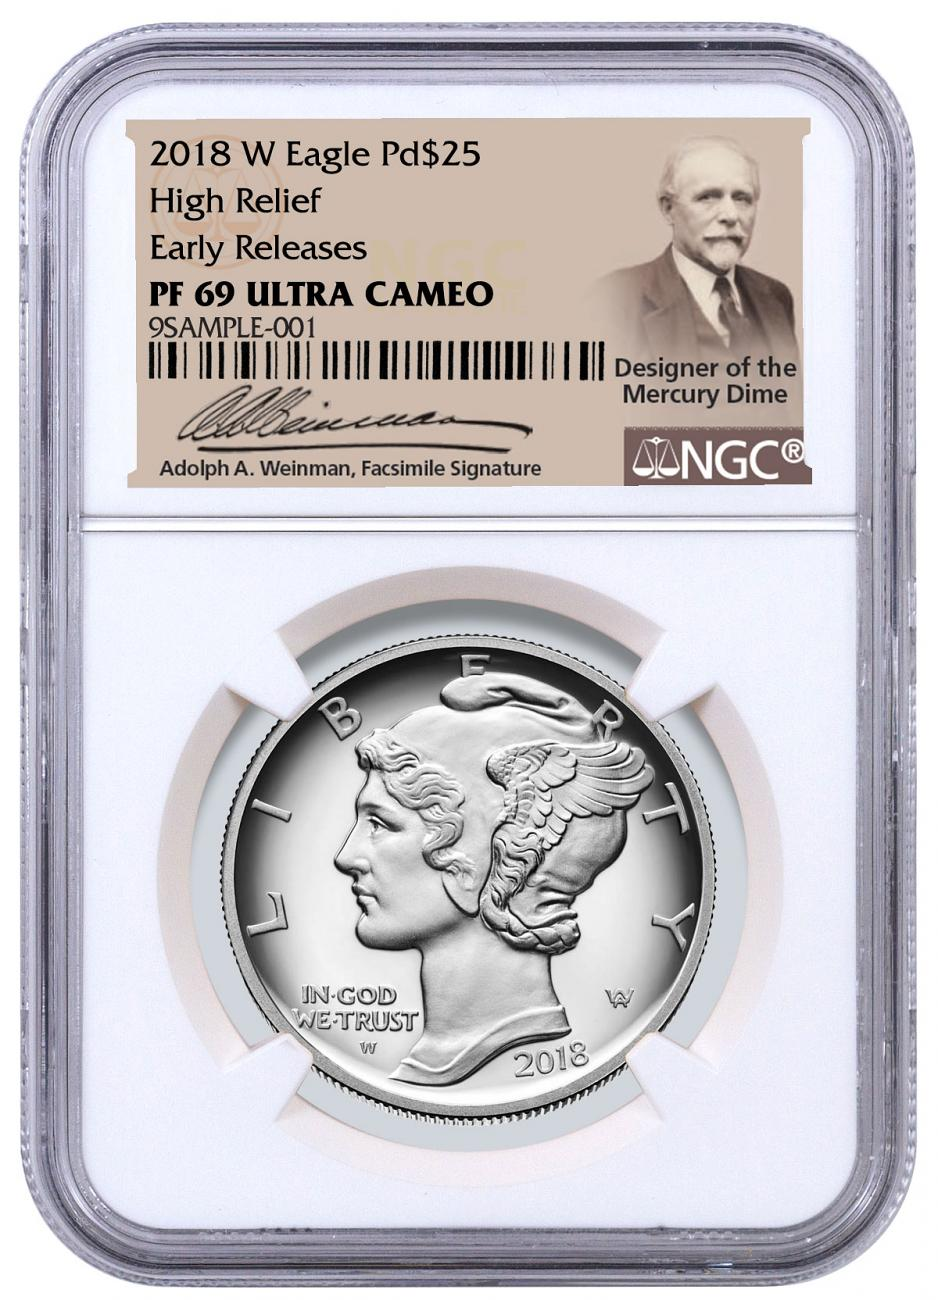 2018-W 1 oz High Relief Palladium Eagle Proof $25 Coin NGC PF69 ER Adolph Weinman Label